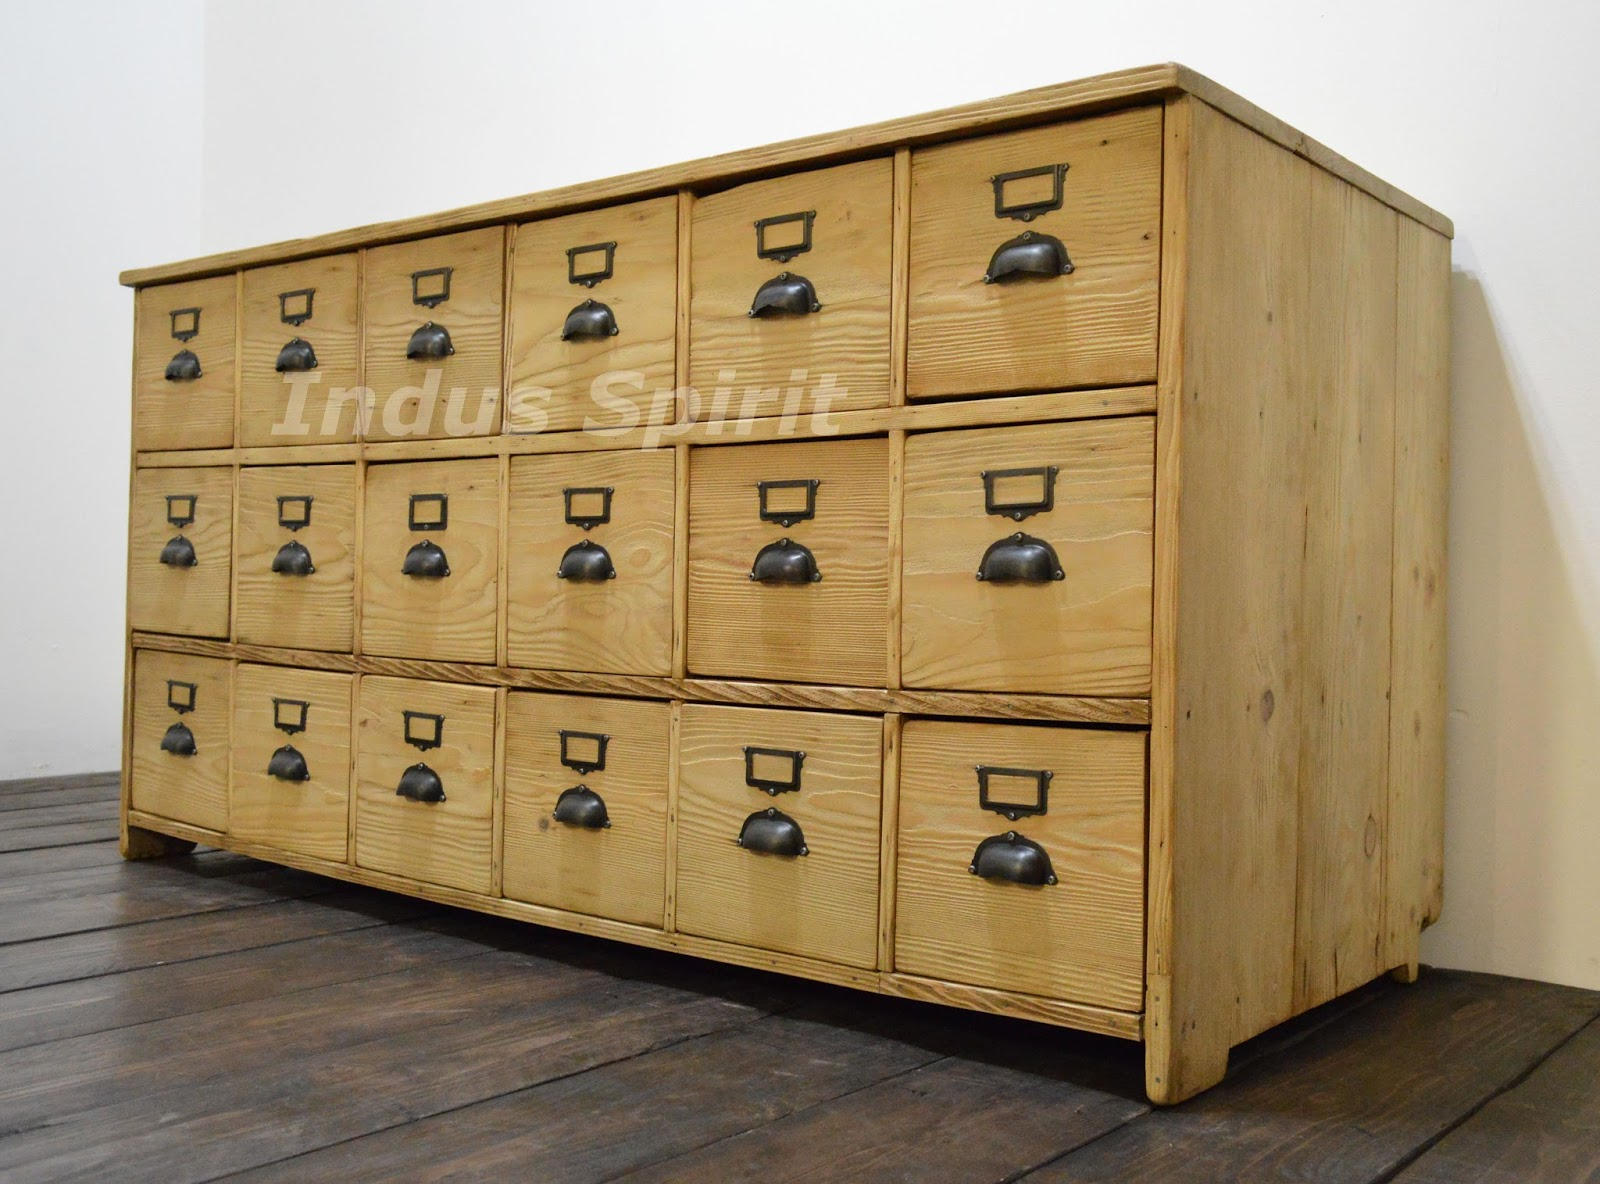 ancien meuble interesting meuble ancien with ancien meuble amazing meuble tv ancien antique. Black Bedroom Furniture Sets. Home Design Ideas